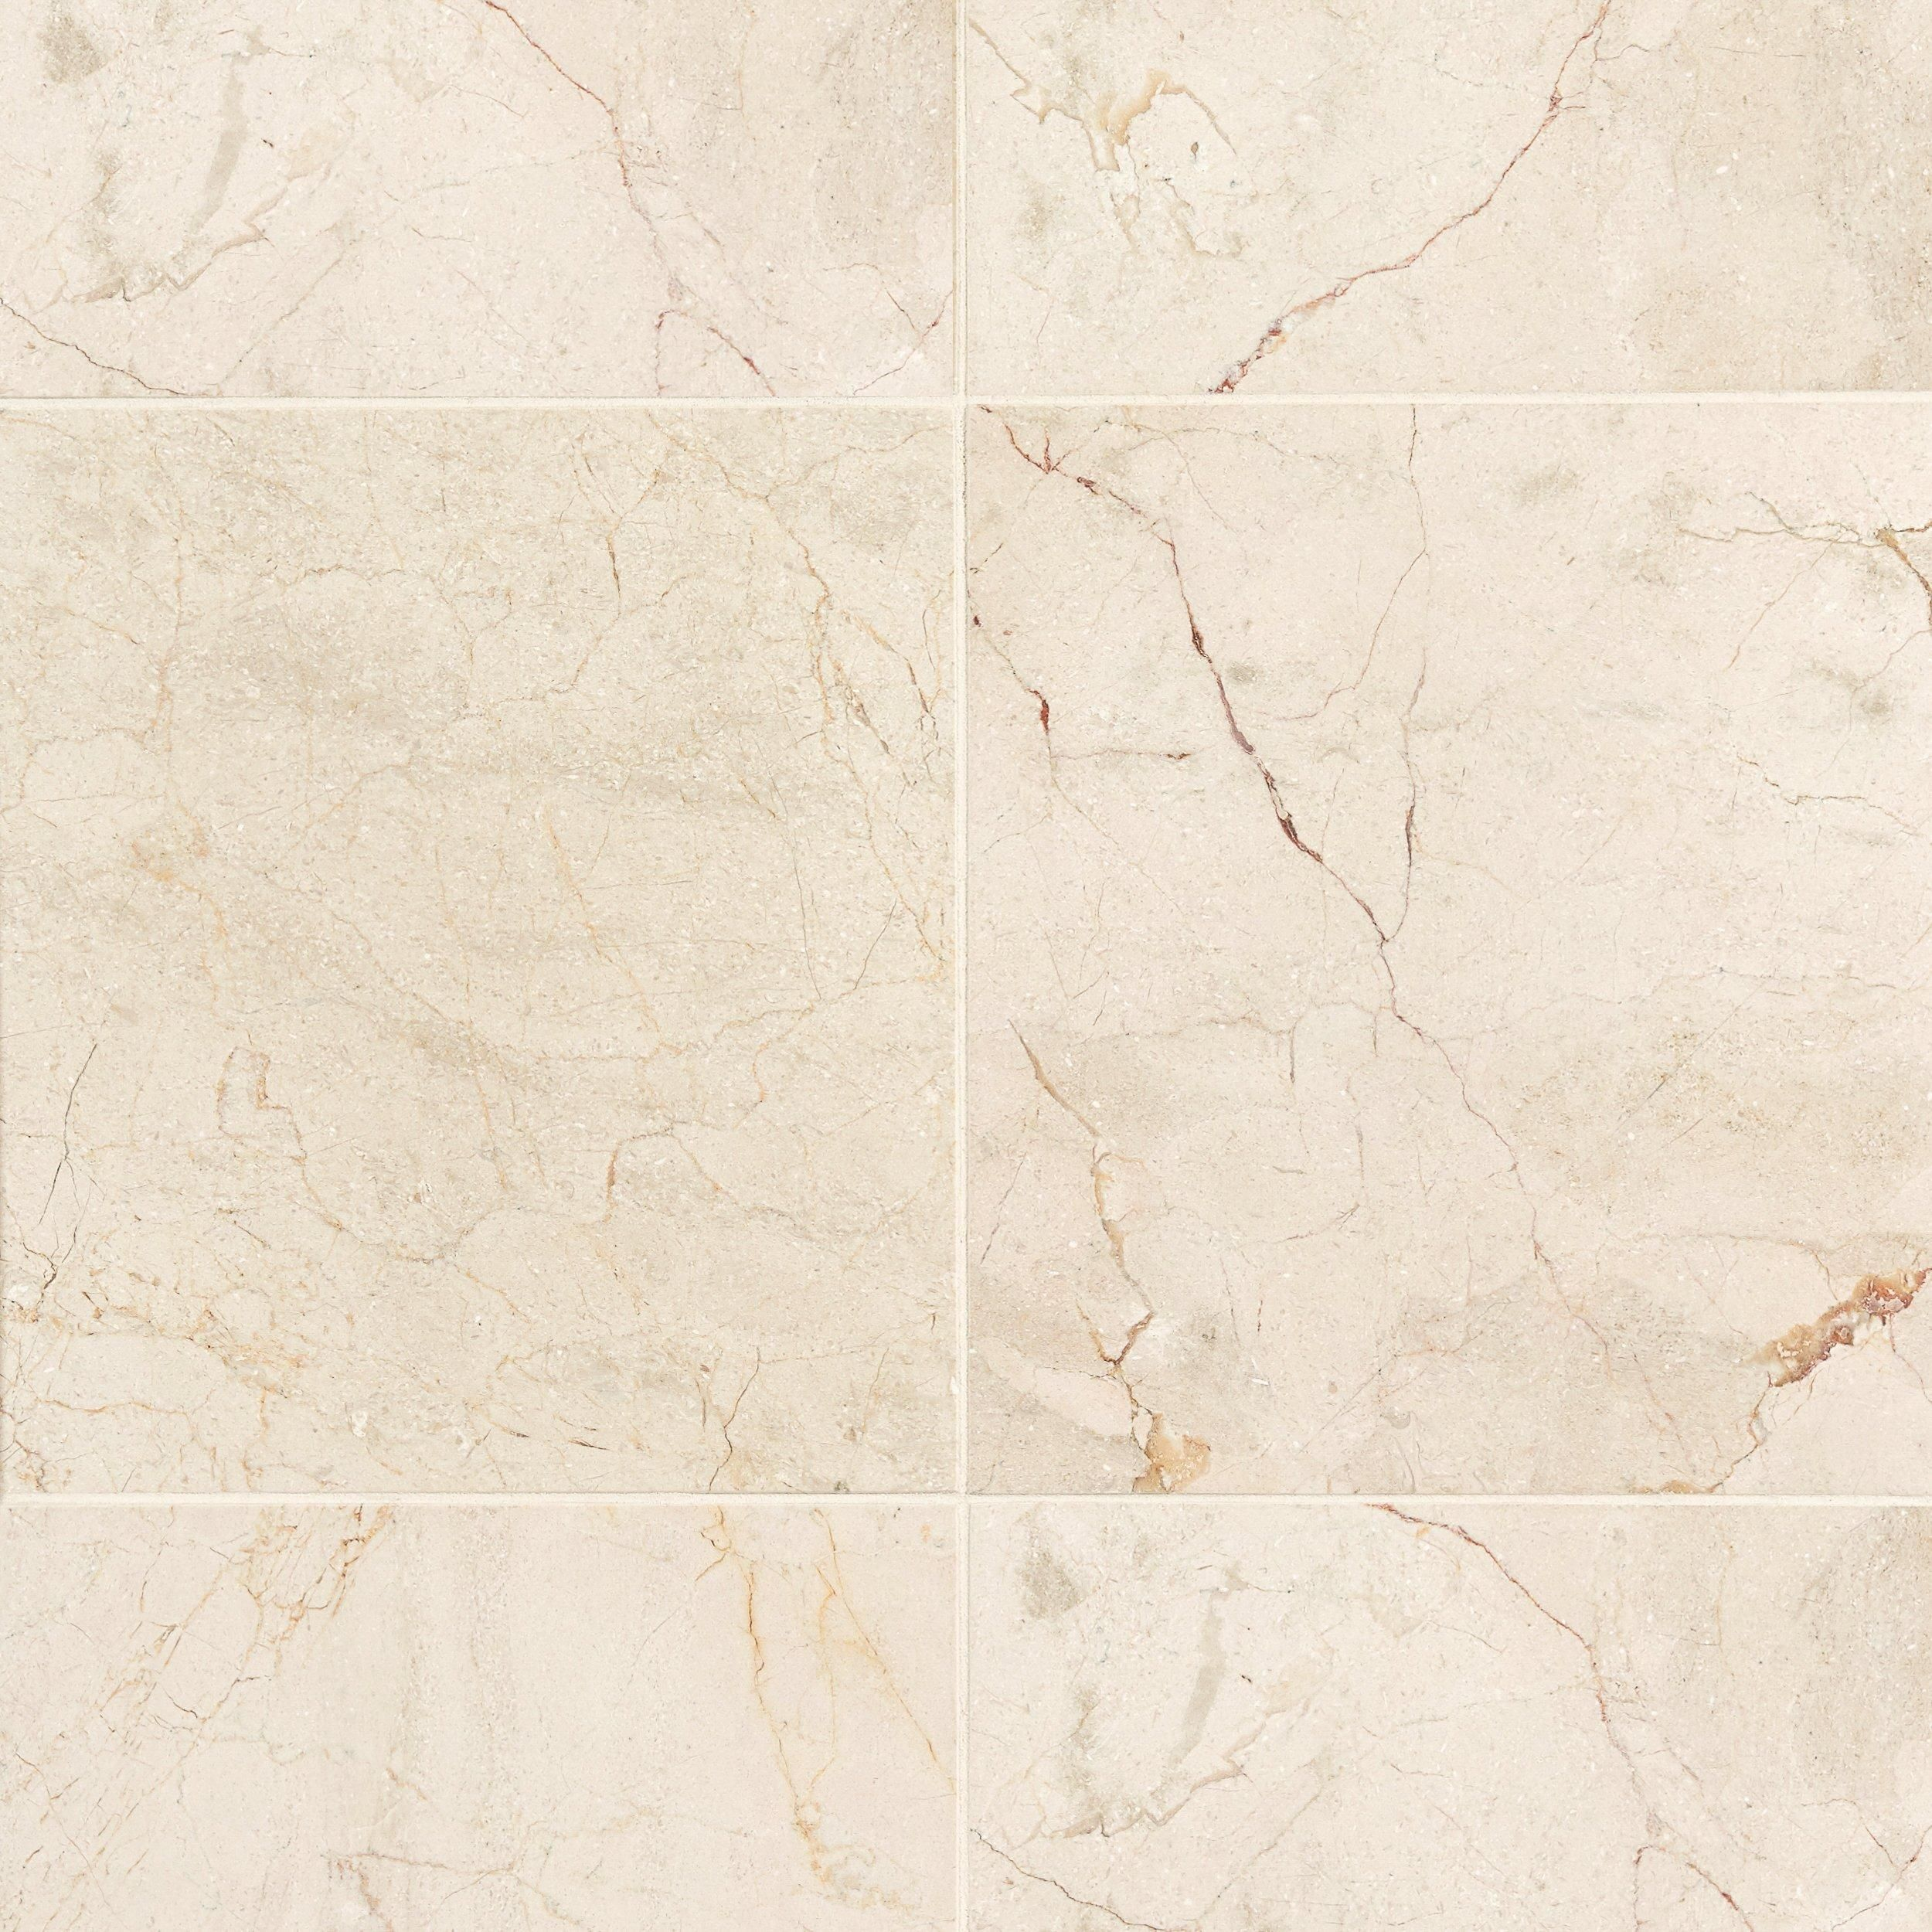 Crema Marfil Classic Marble Tile Floor Decor Polished Marble Tiles Marble Tile Floor Flooring